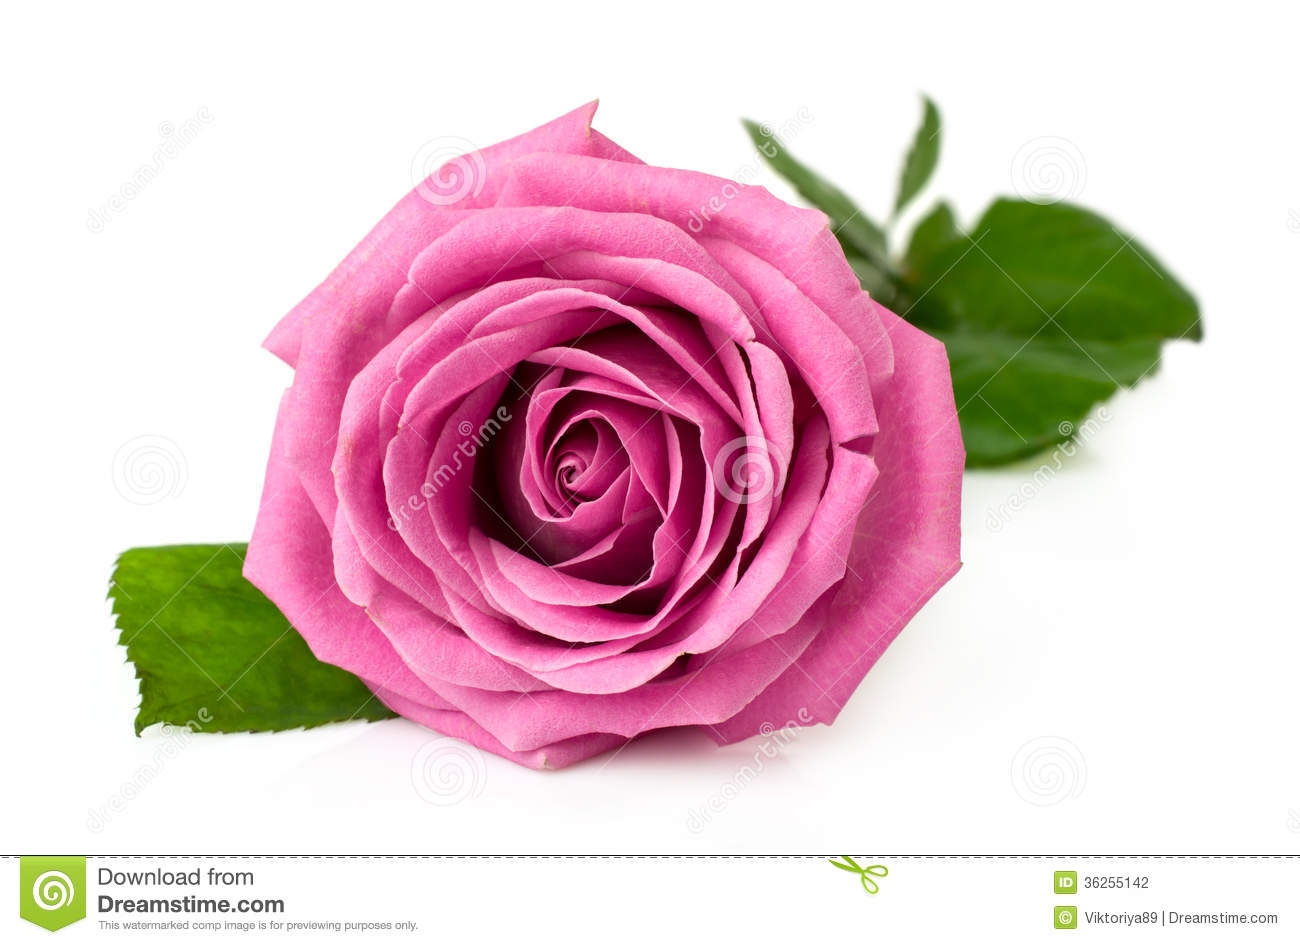 Beautiful Single Red Rose Flower Isolated Royalty Free: Single Pink Rose Stock Photo. Image Of Leaf, Beauty